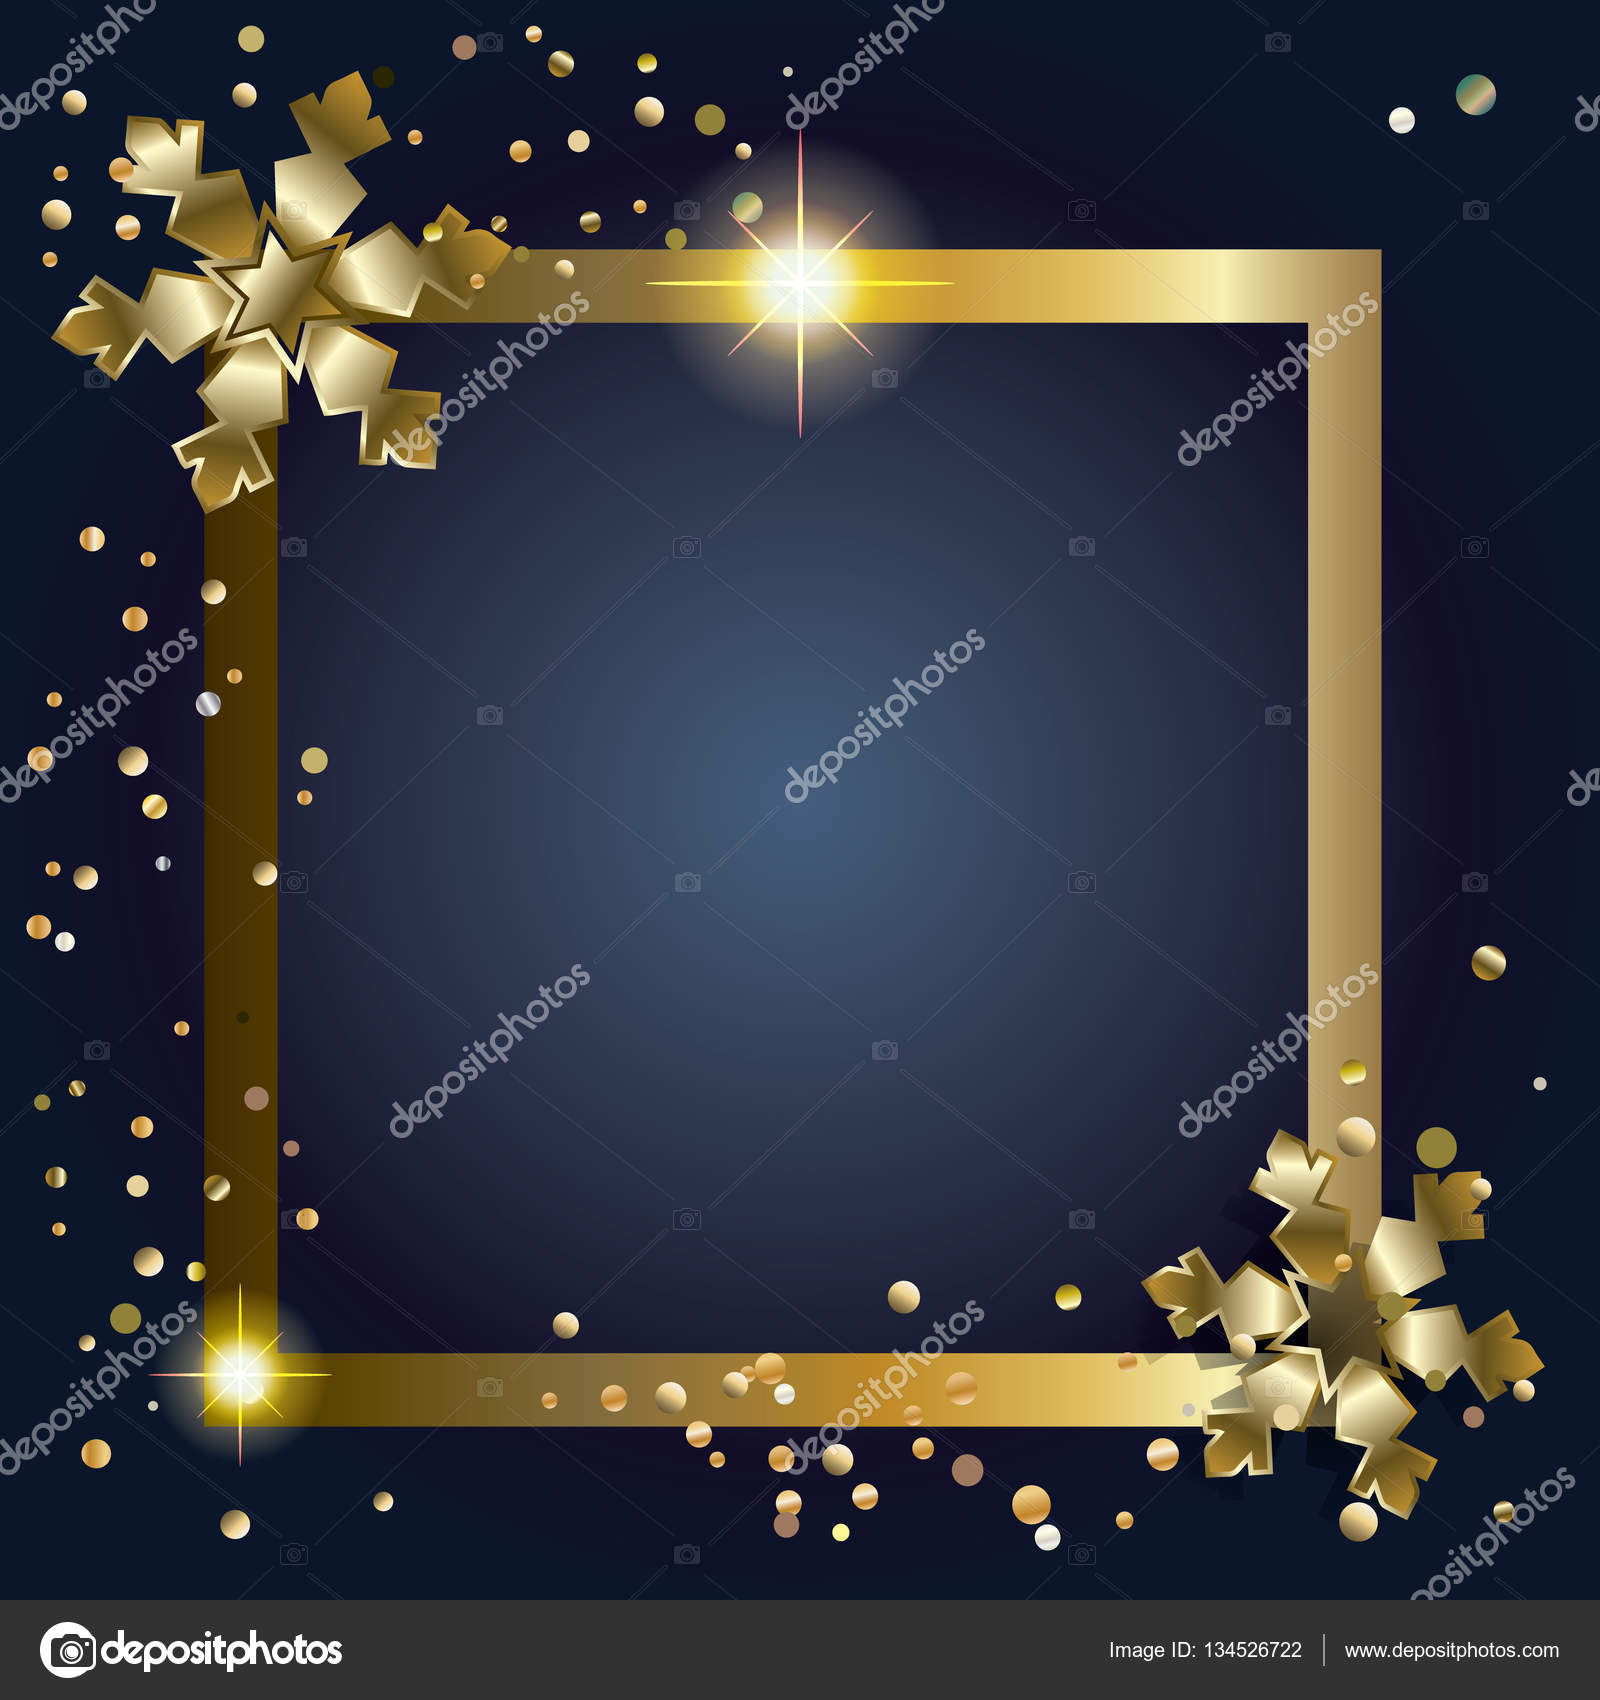 frame merry christmas and happy new year decoration greeting card border with gold snowflakes glitter fall snow confetti and decorative elements